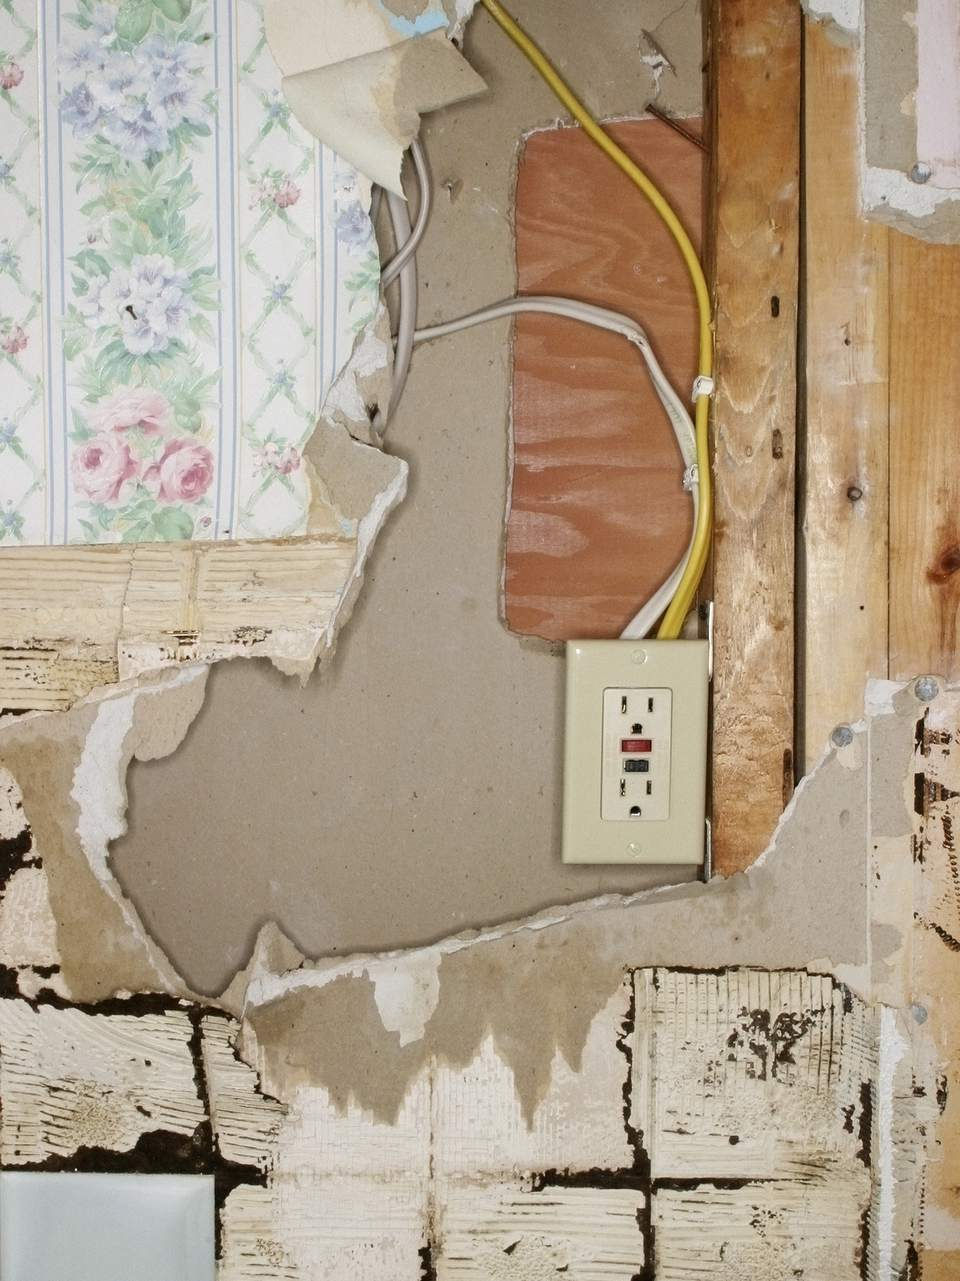 Is My Old Electrical House Wiring Safe?